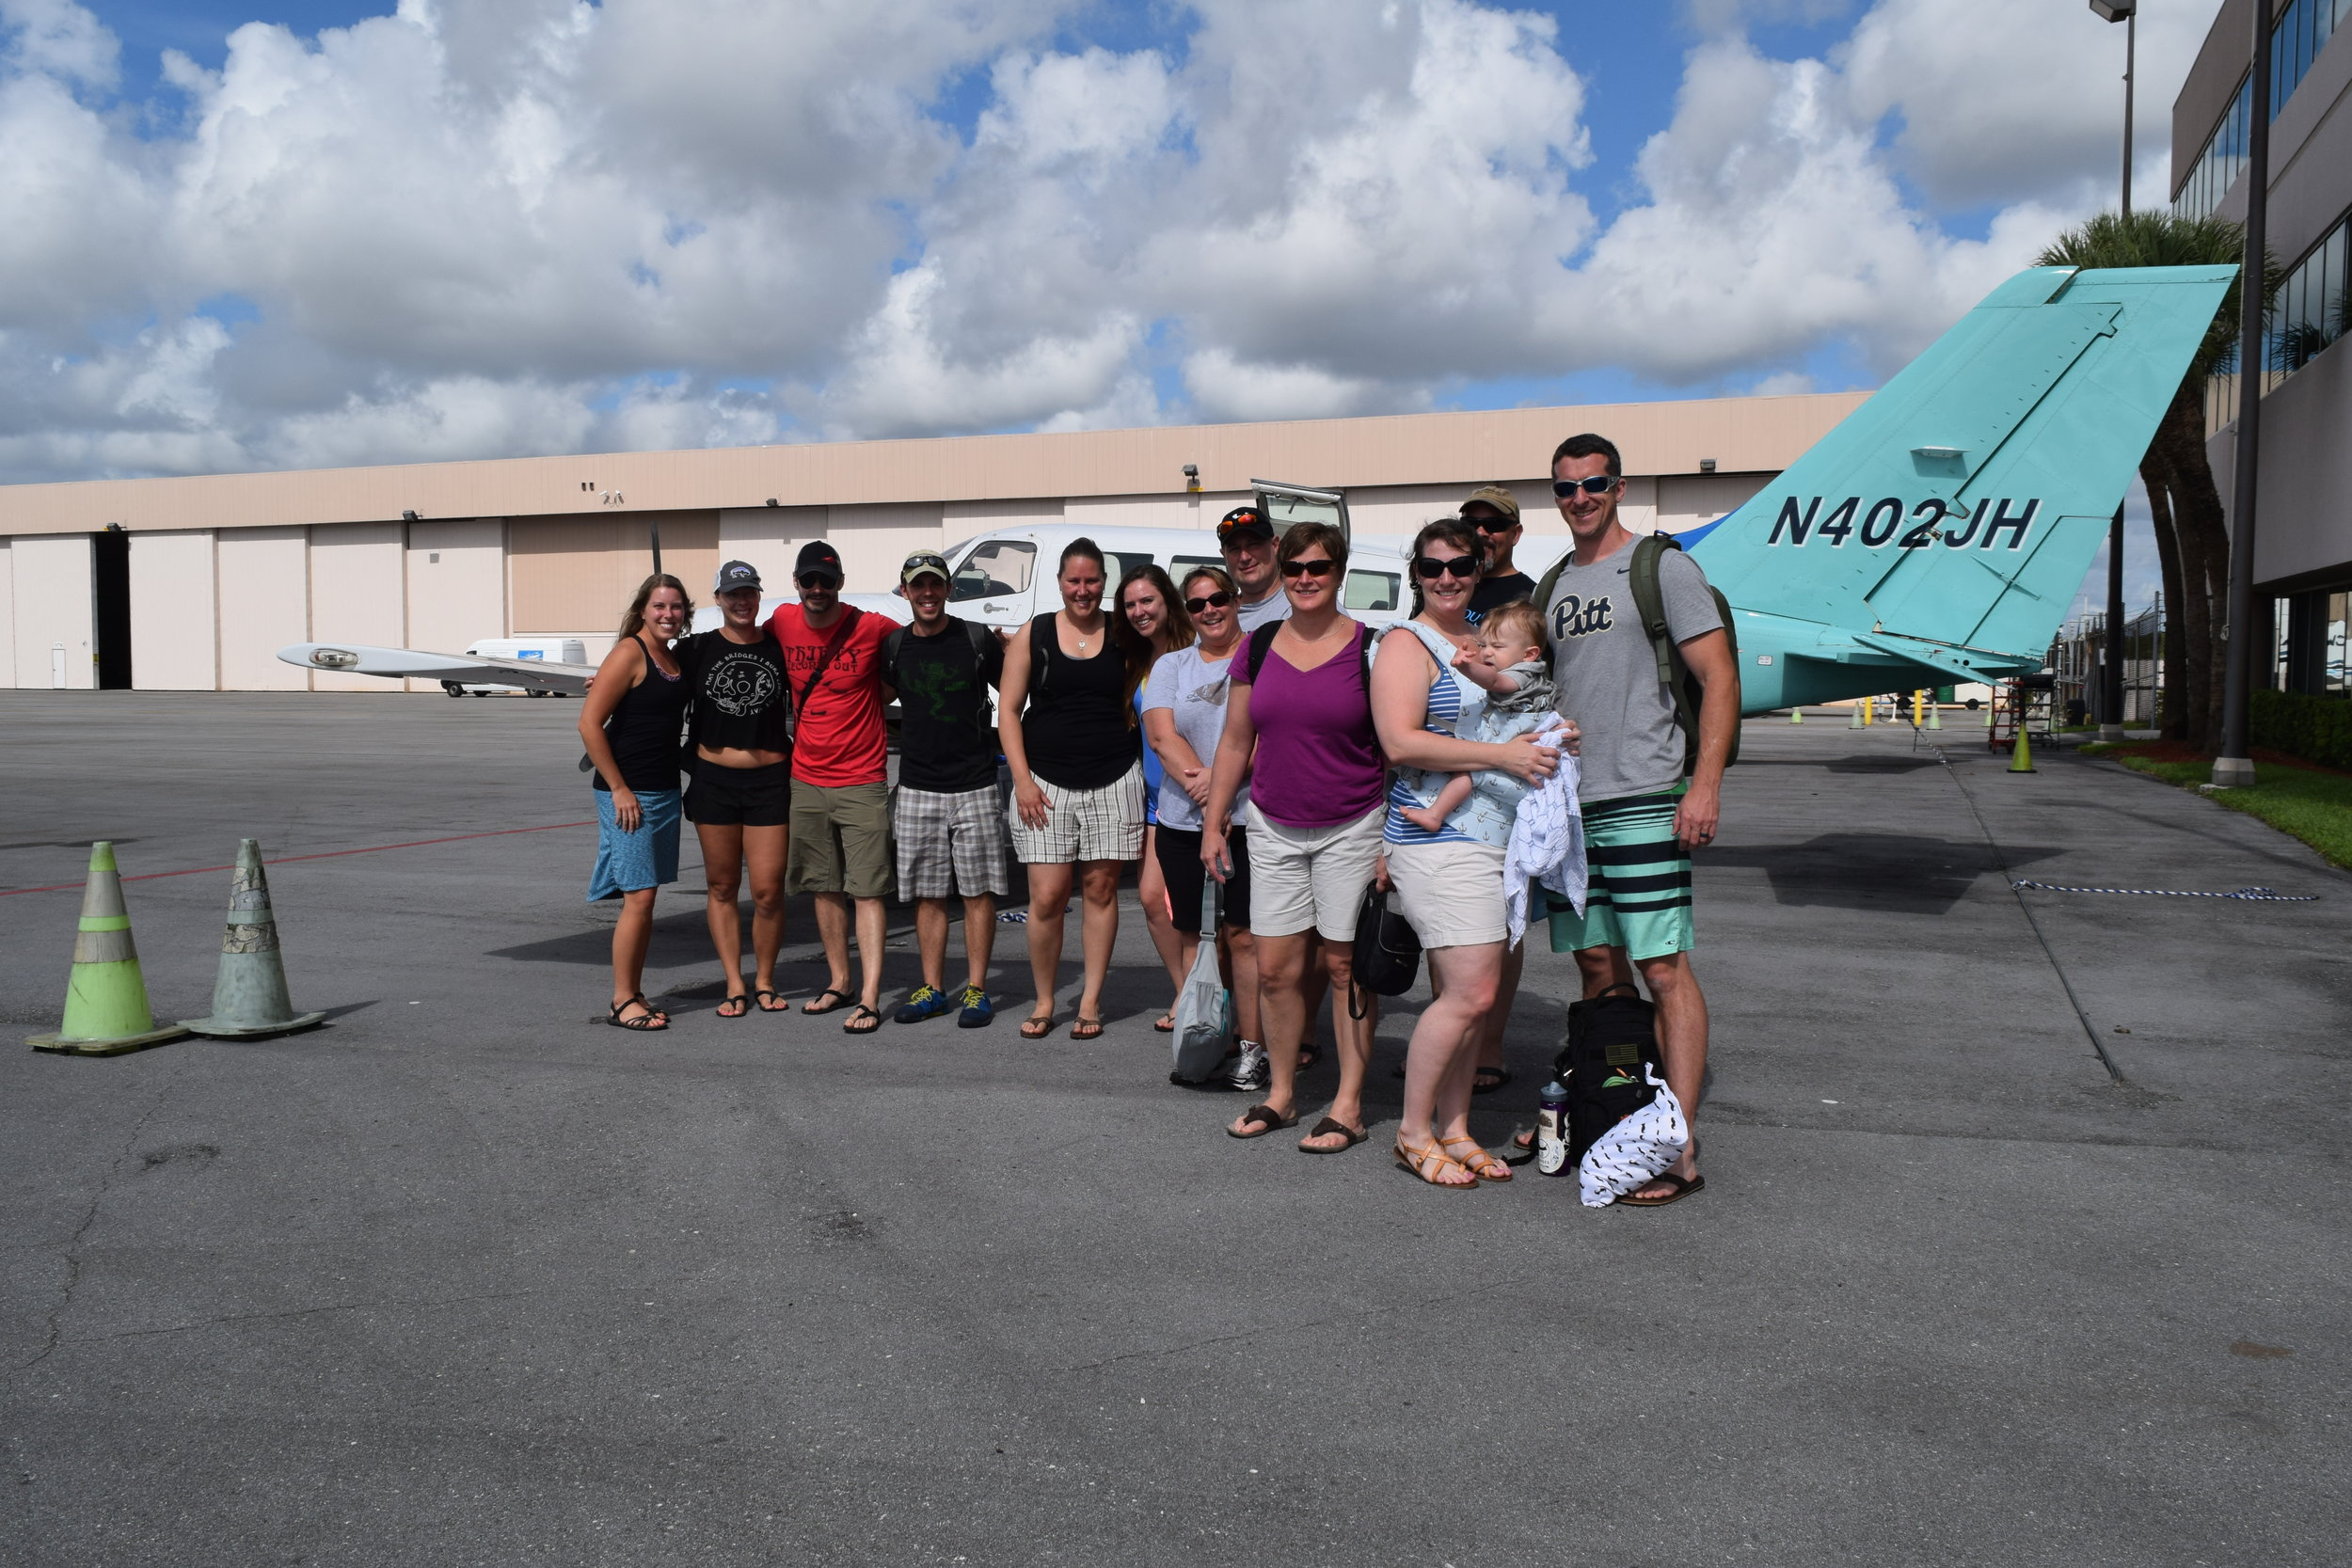 Good looking group! We flew from point A to B on the map below: